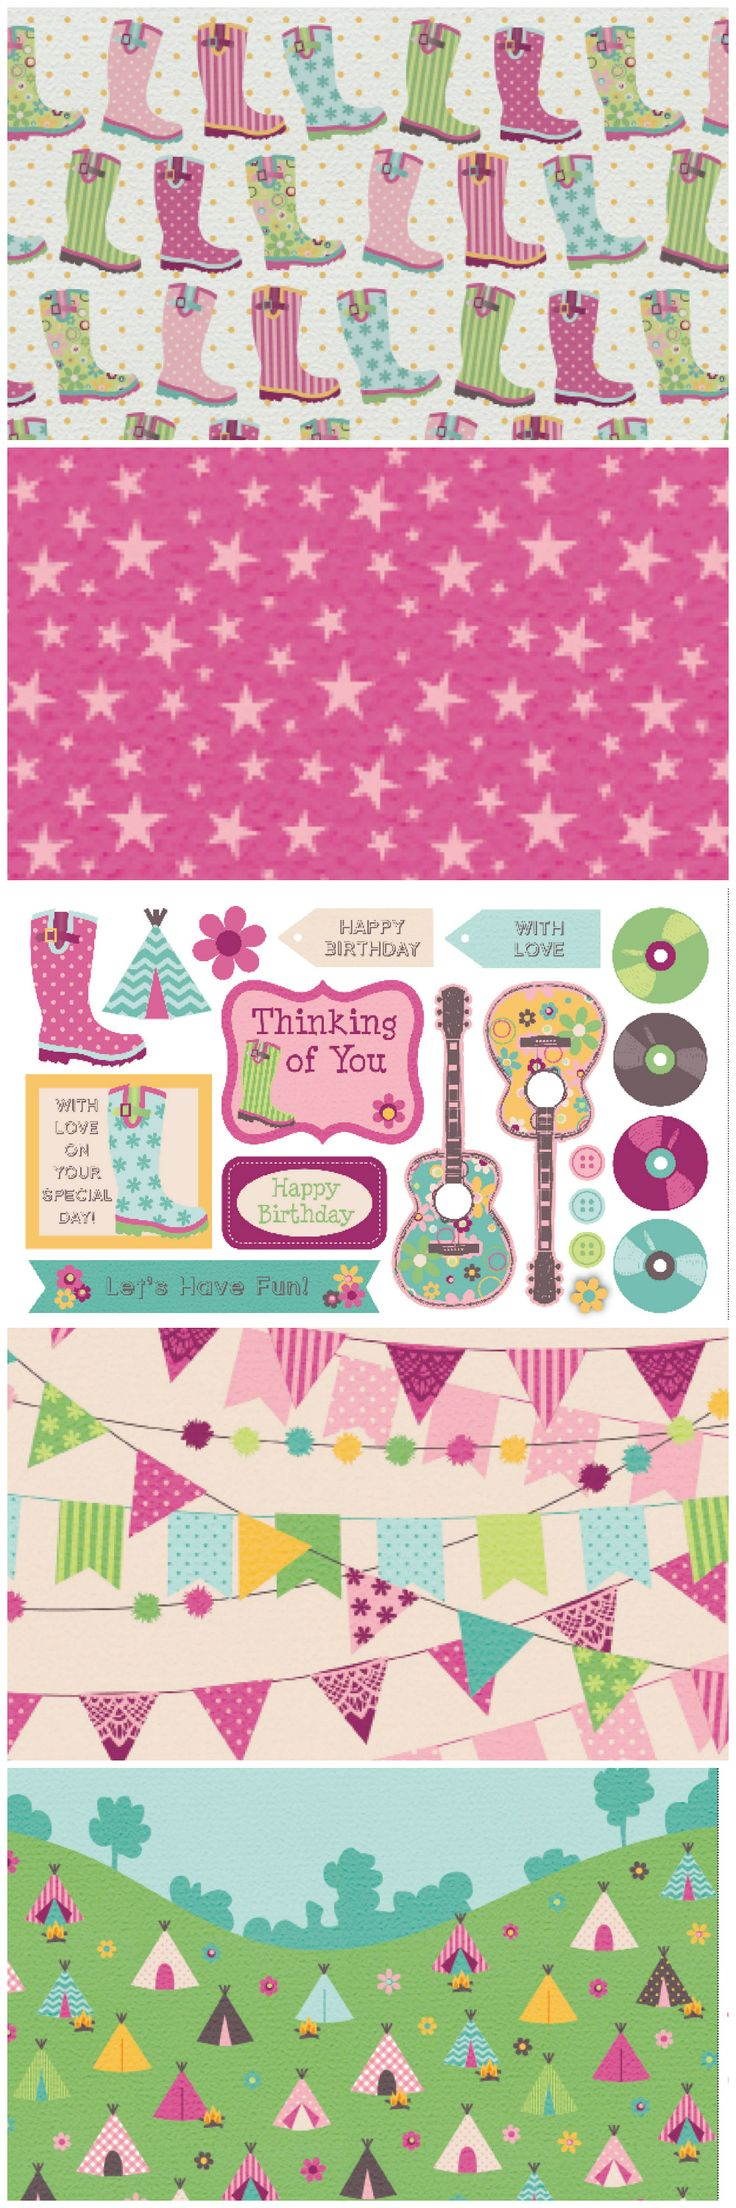 Scrapbook paper england theme - Give Your Card Making And Scrapbooking A Funky Summer Festival Vibe With These Free Digital Papers